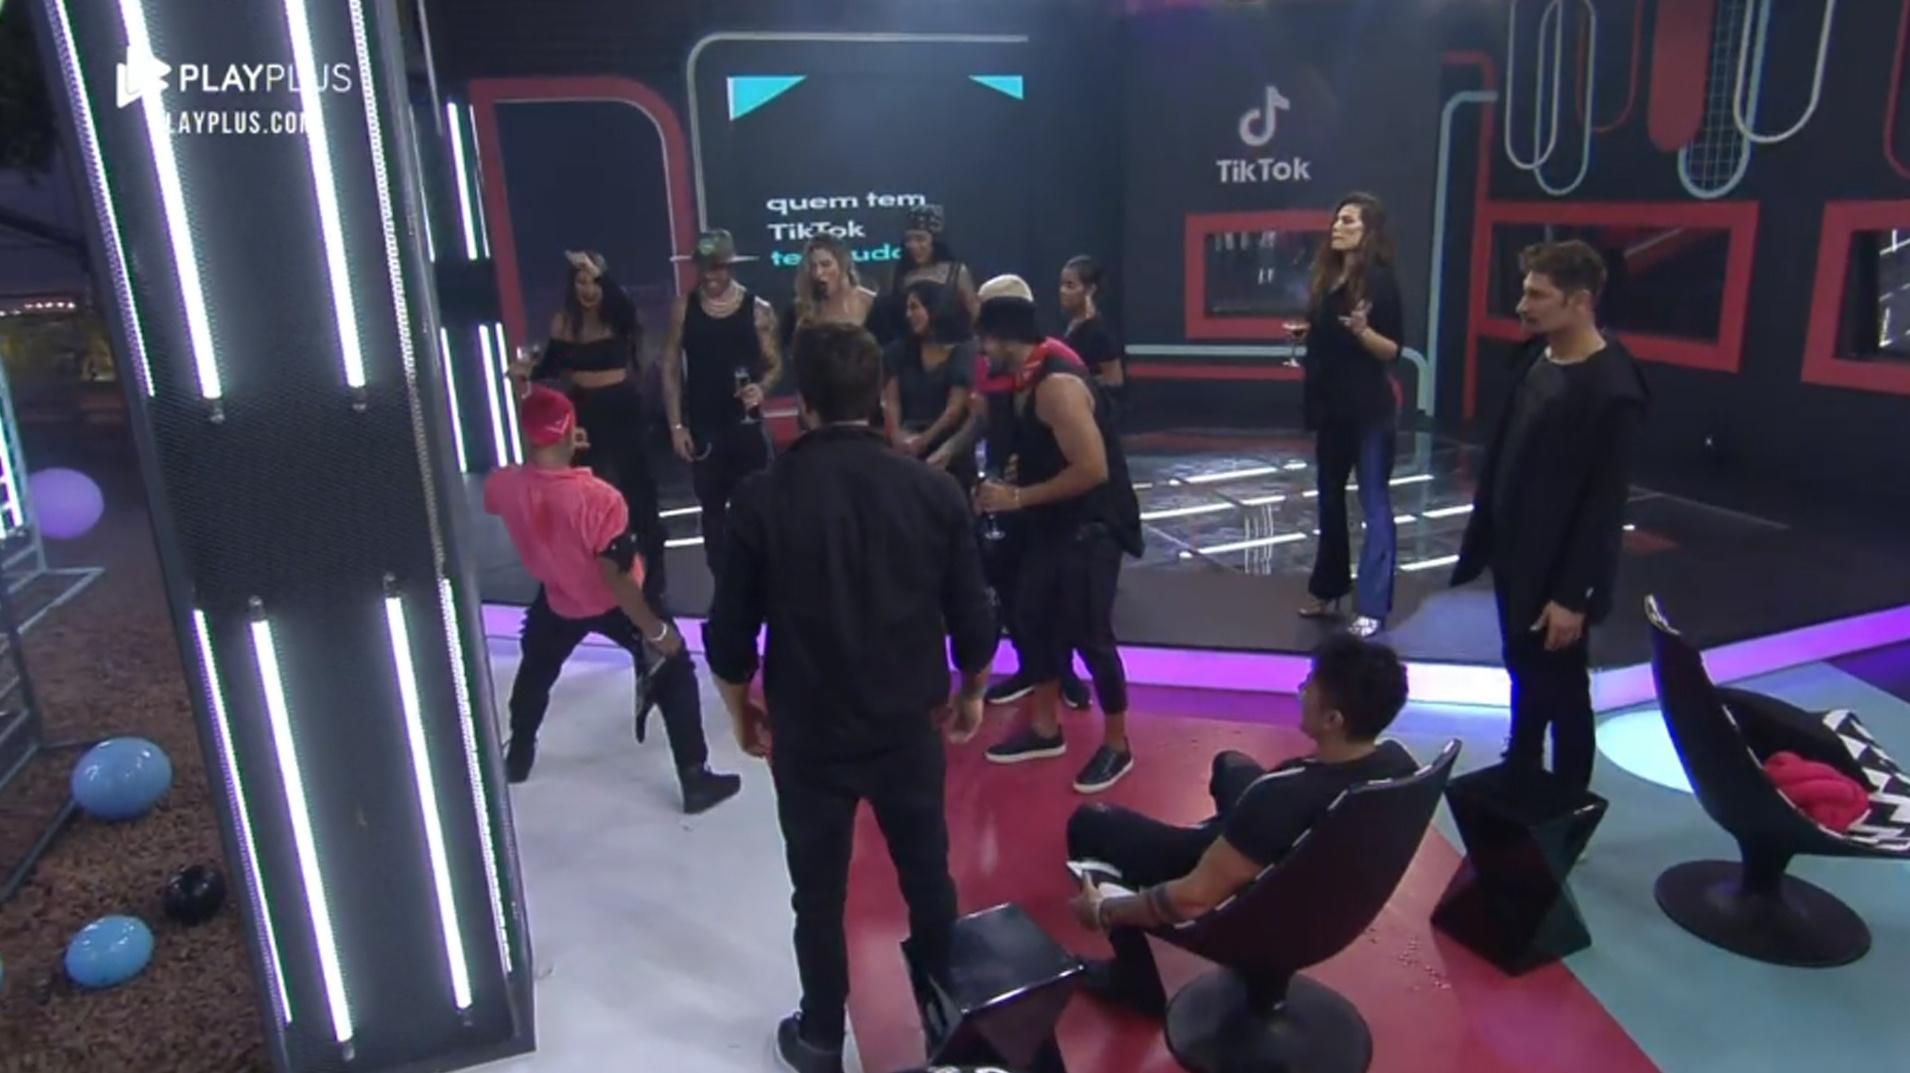 A Fazenda 2021: Dynho Alves puts on a dance show at the party - clone / Playplus